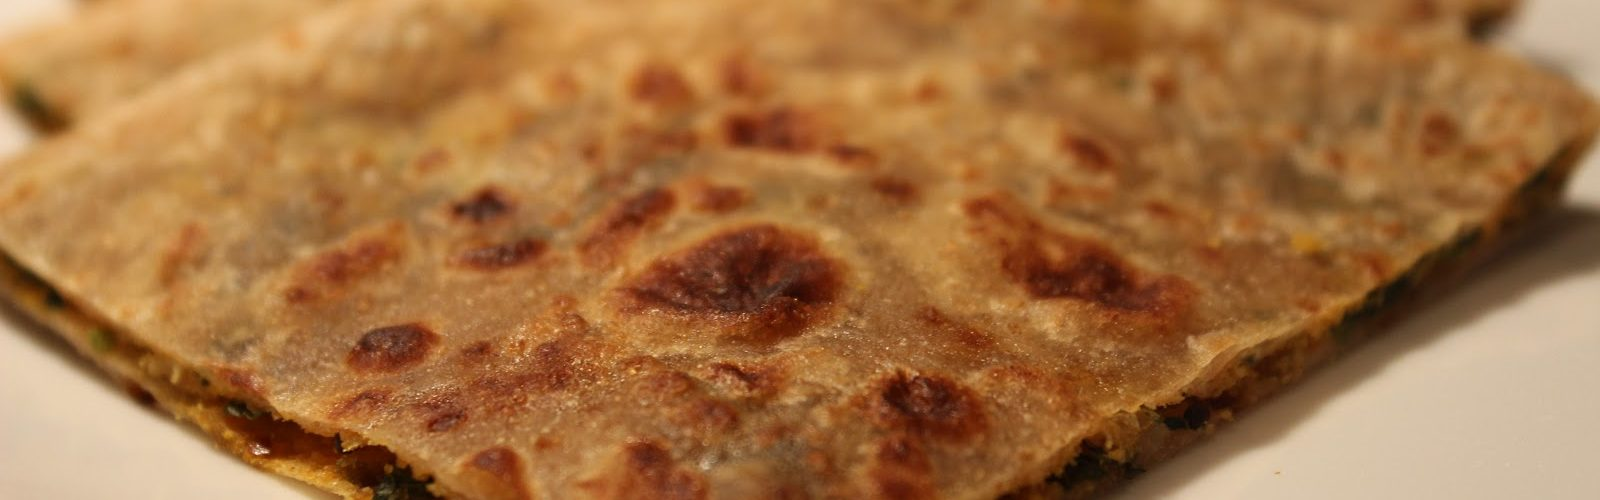 Bharwa Methi Paratha (Anti-Diabetic) Recipe – How To Make Bharwa Methi Paratha